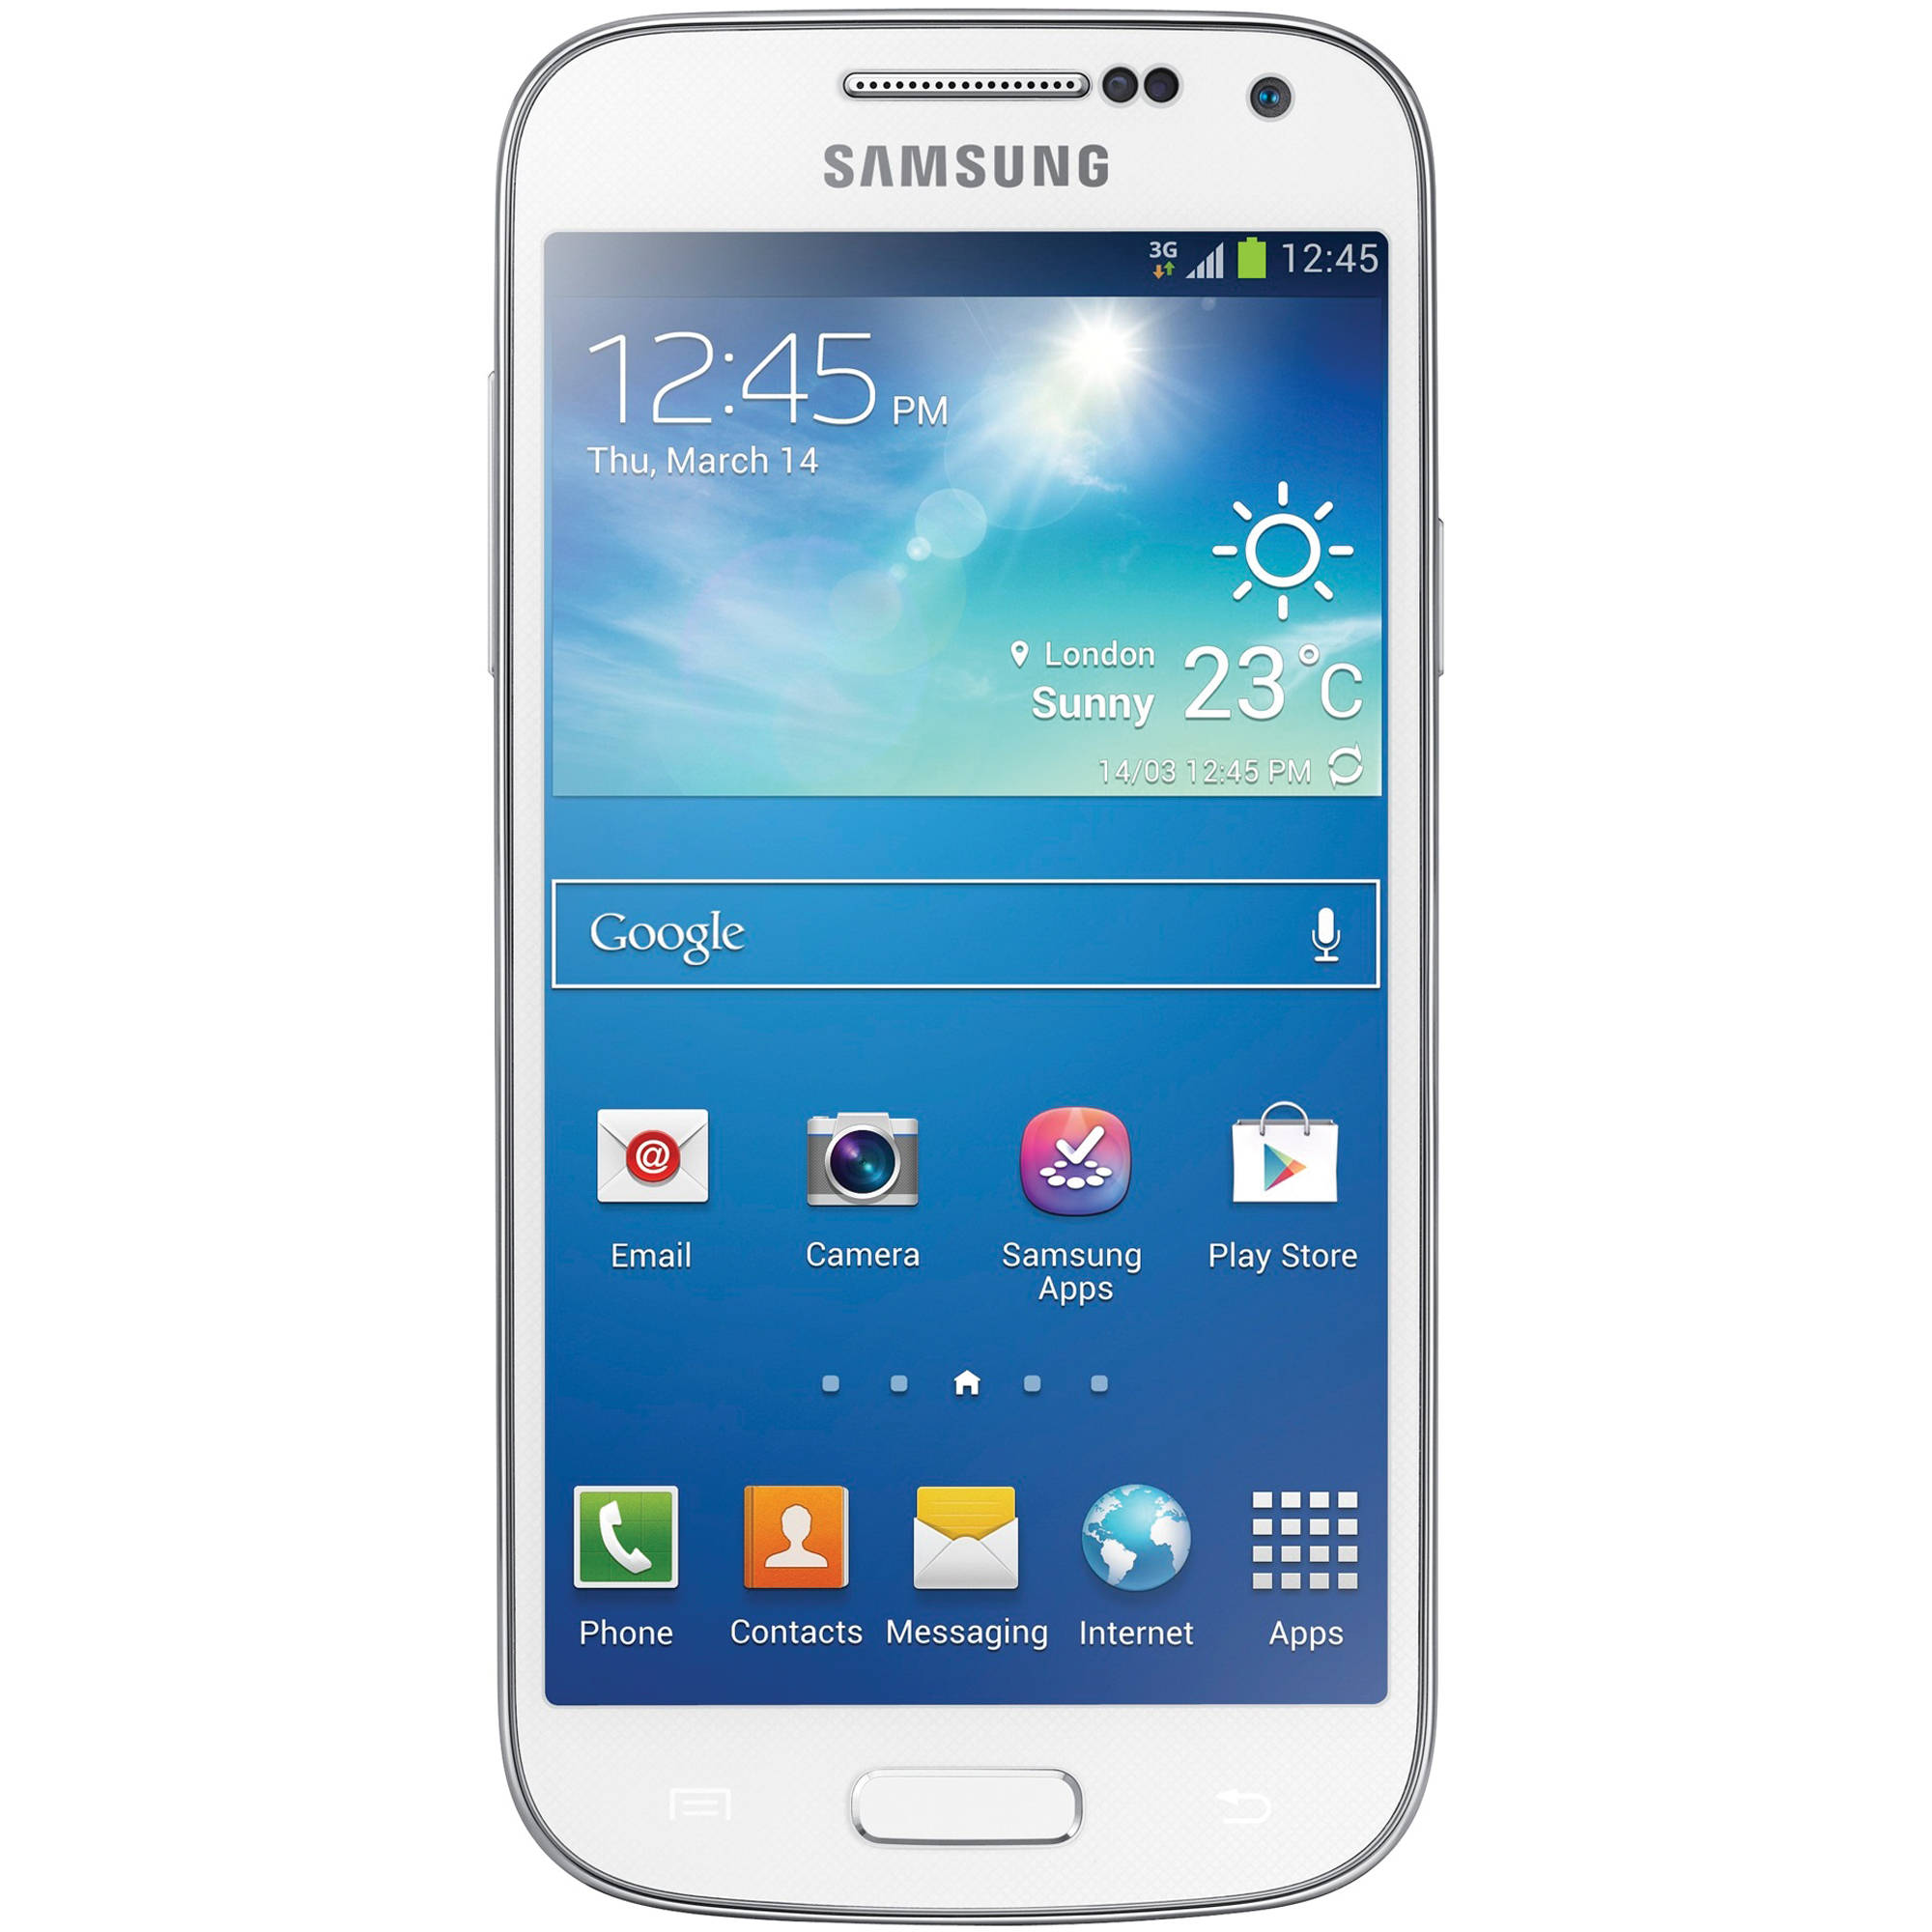 samsung galaxy s4 mini gt i9195 8gb smartphone gt i9195 white. Black Bedroom Furniture Sets. Home Design Ideas